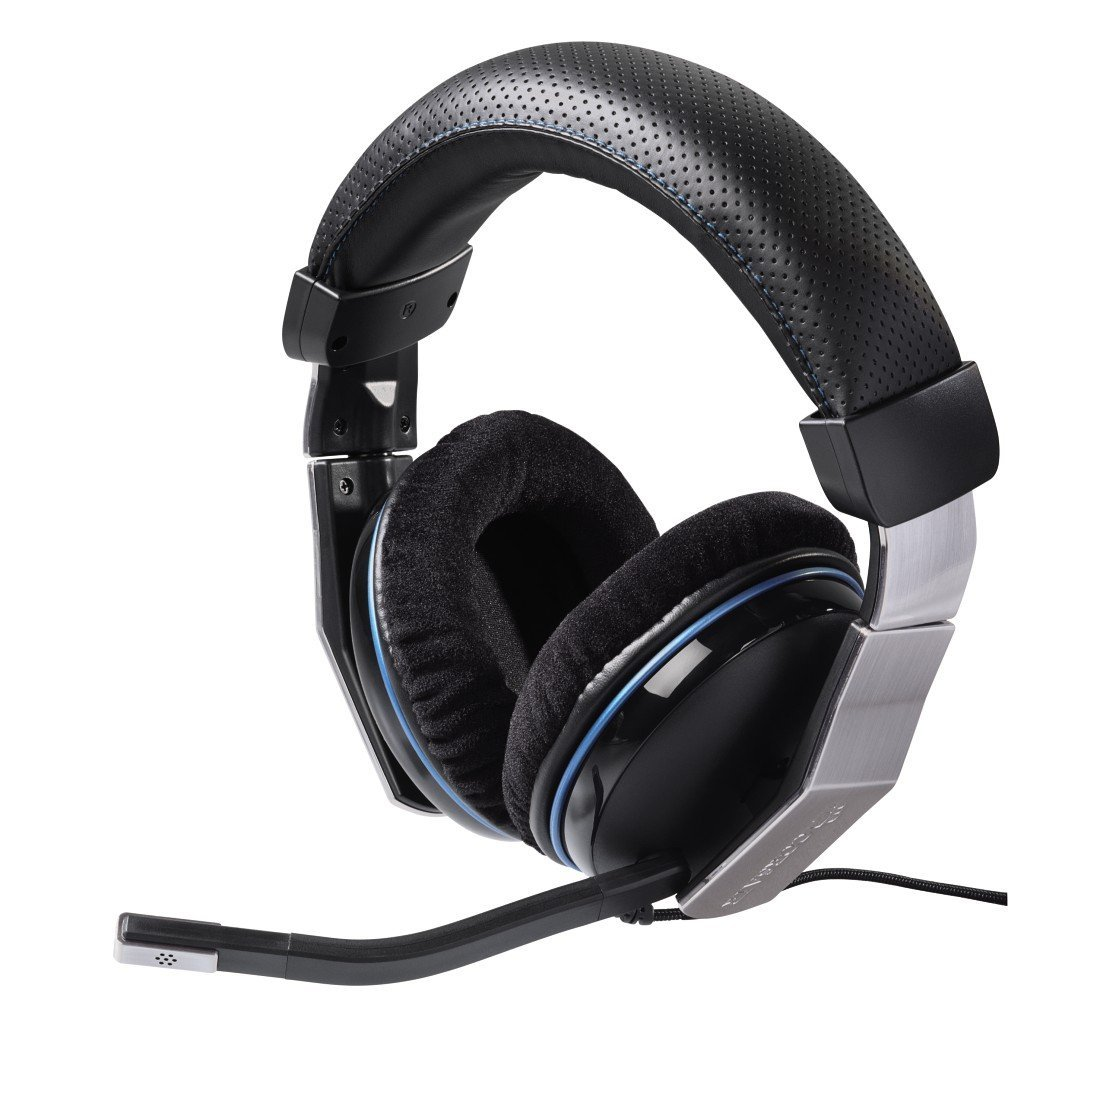 65e08d8fc28 Corsair Vengeance 1500 USB Connector Dolby 7.1 Gaming Headset (Year  2013/good condition), Electronics on Carousell